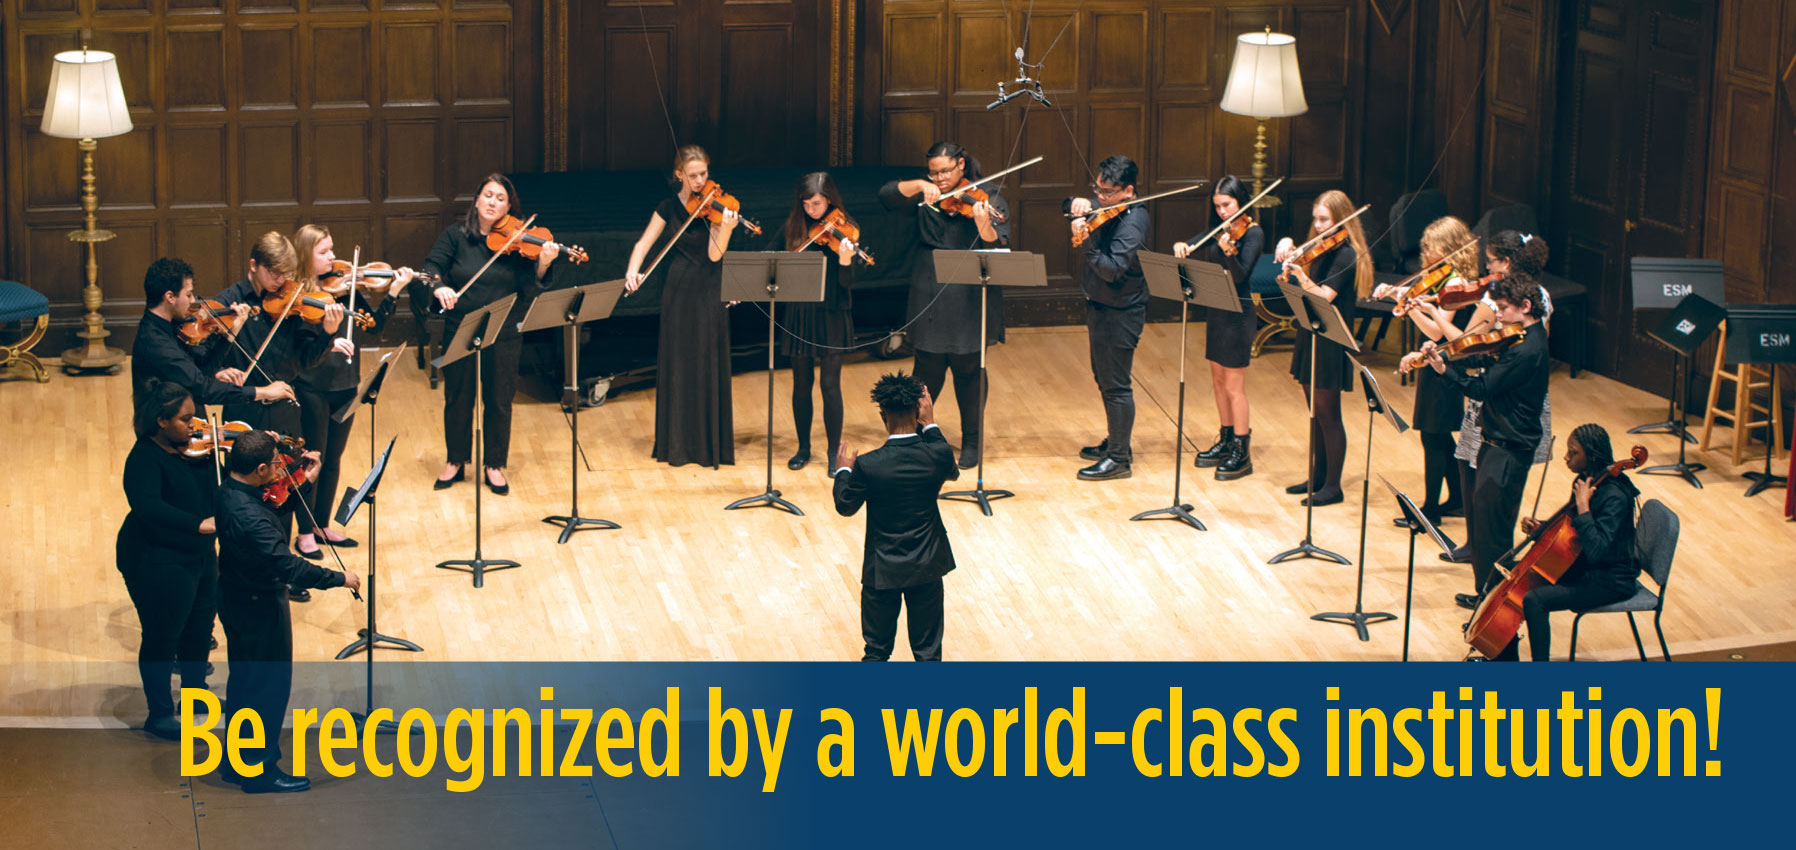 An ECMS Diploma student conducts a string ensemble of his peers on stage in a concert at Kilbourn Hall